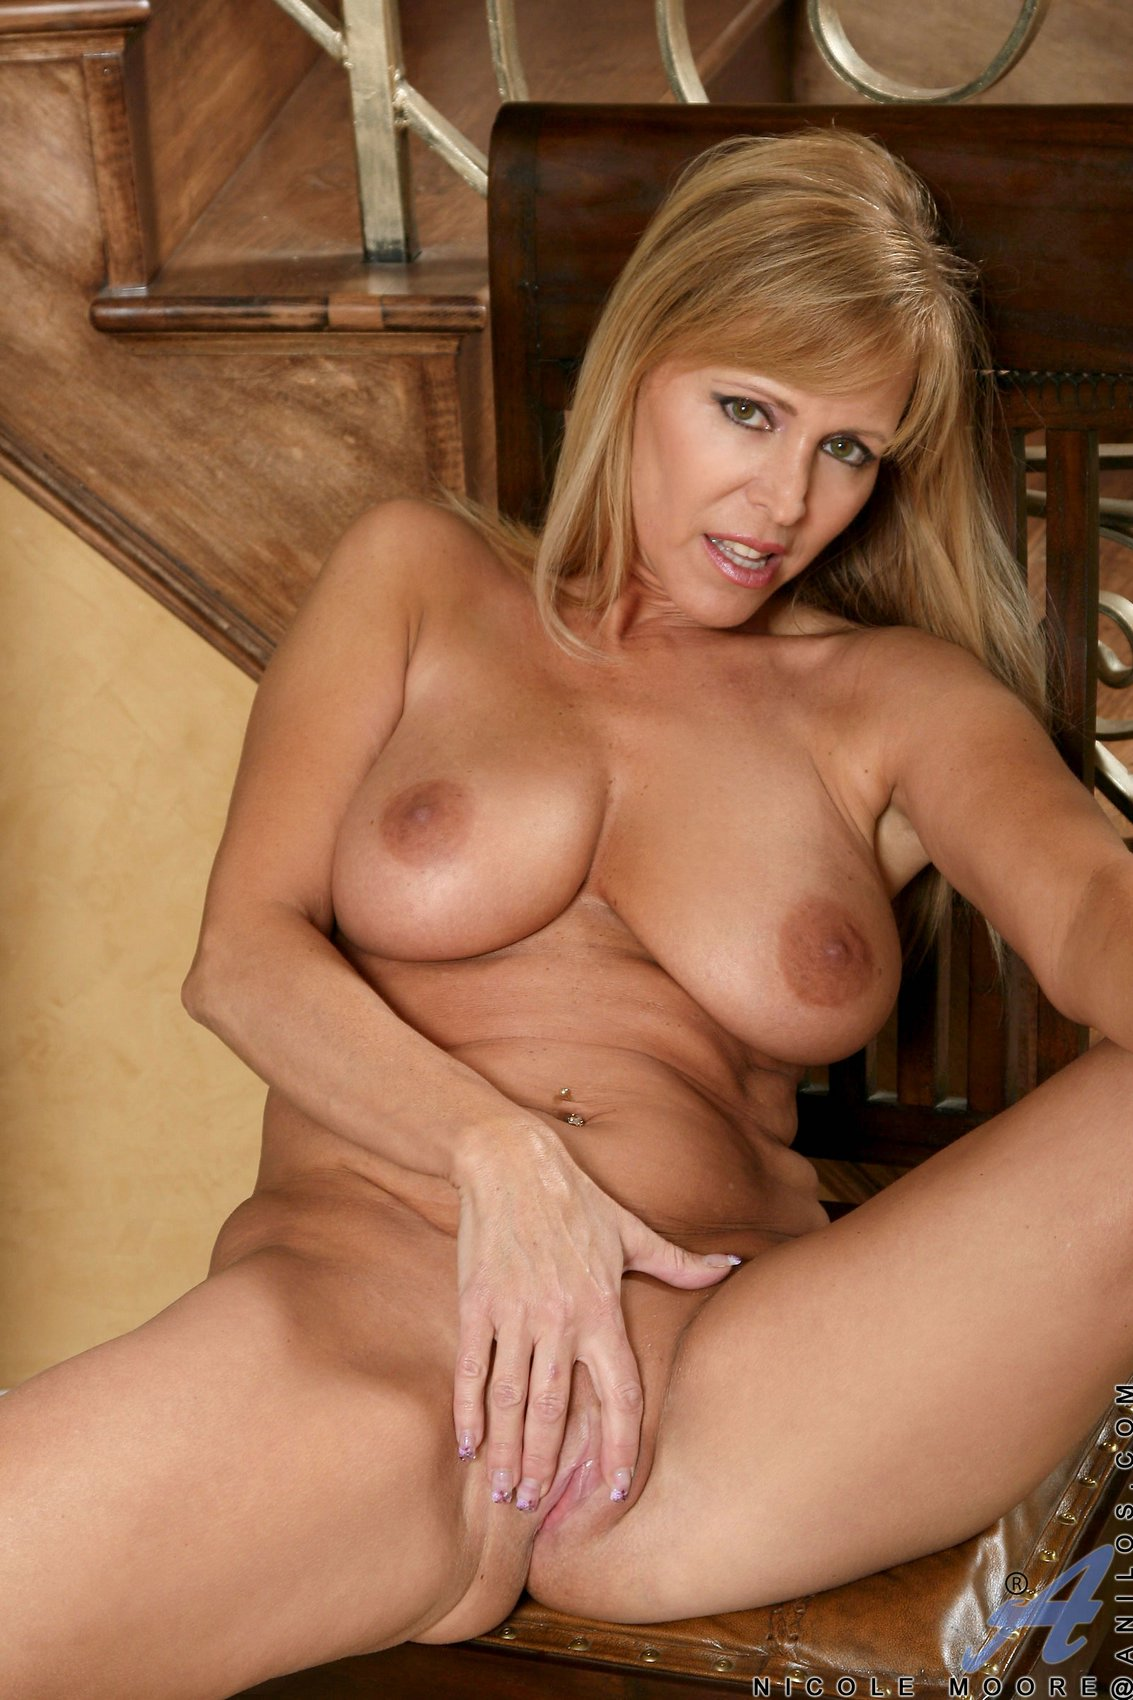 Gorgeous Milf Nicole Moore Shows Off Her Sexy Body And Big Boobs - My -5576